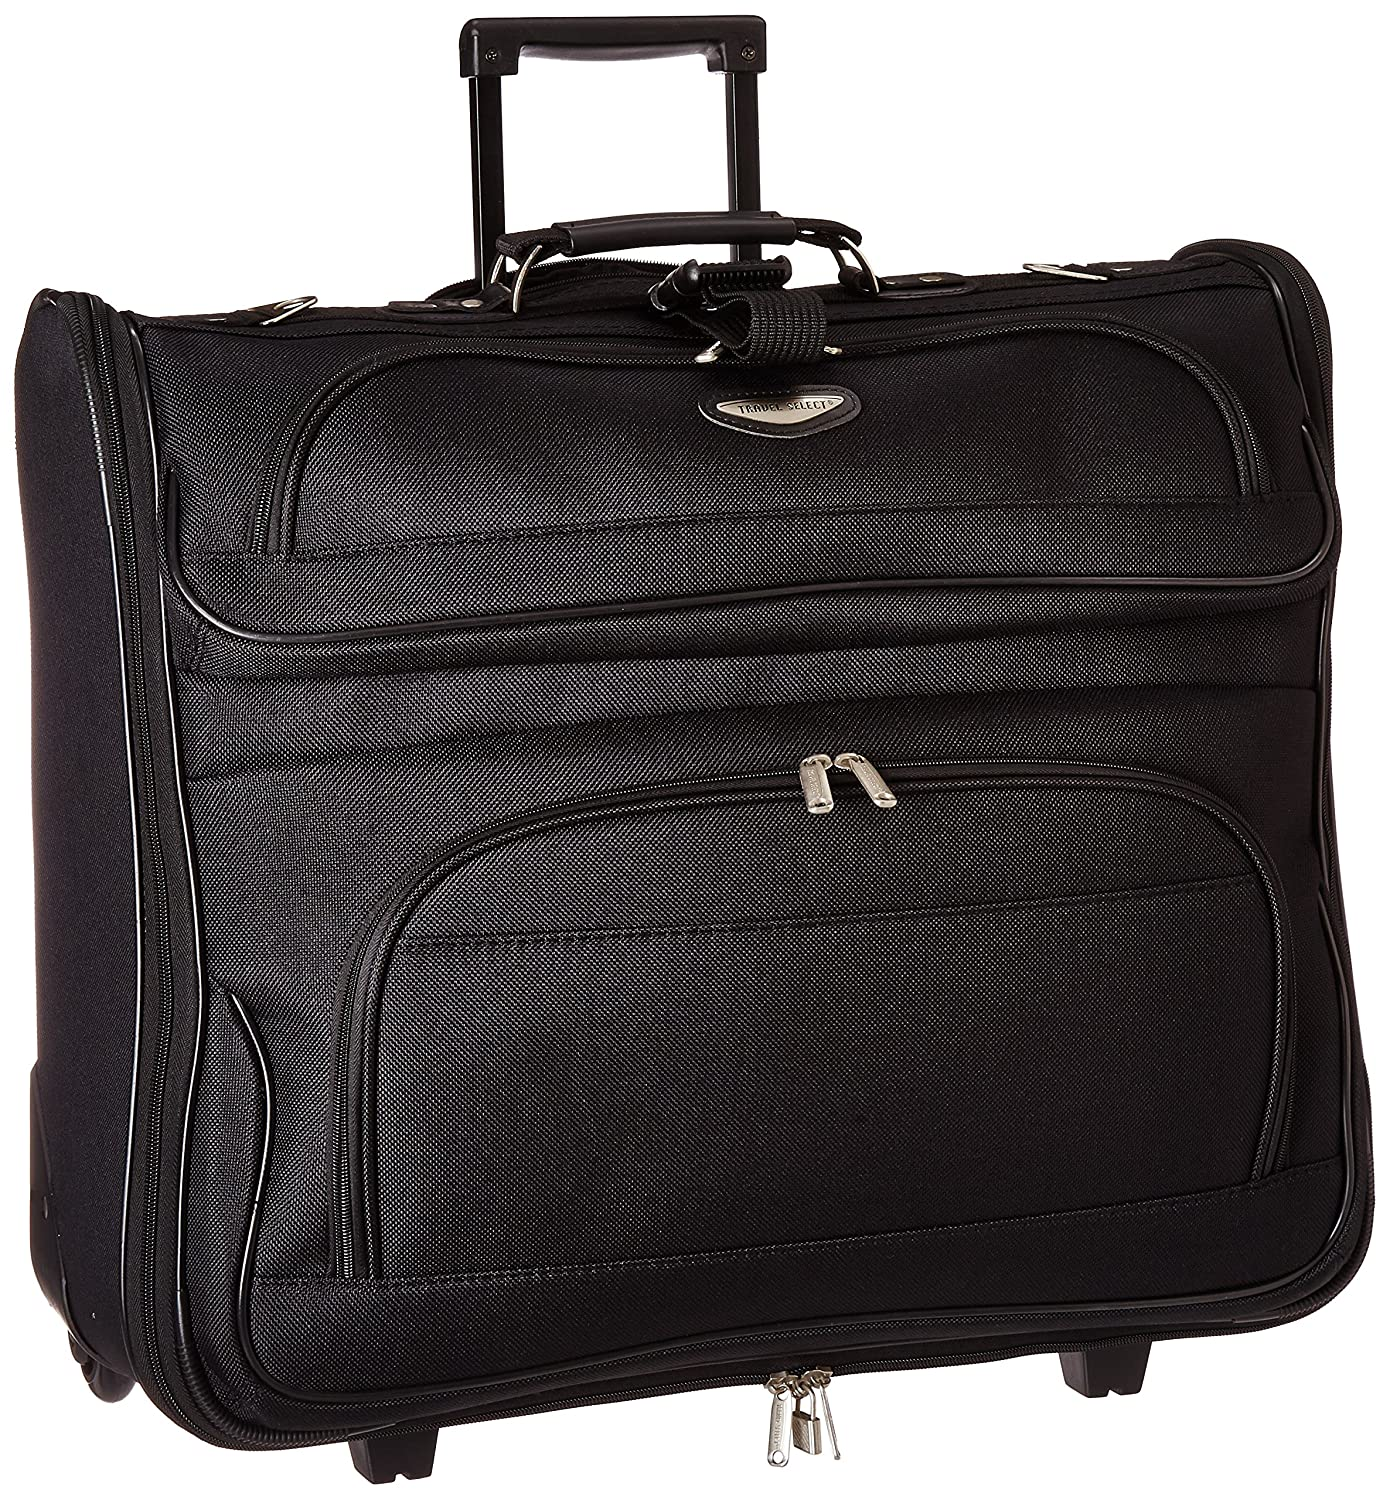 Travel Select Amsterdam Rolling Garment Bag Wheeled Luggage Case 855156af5fb35